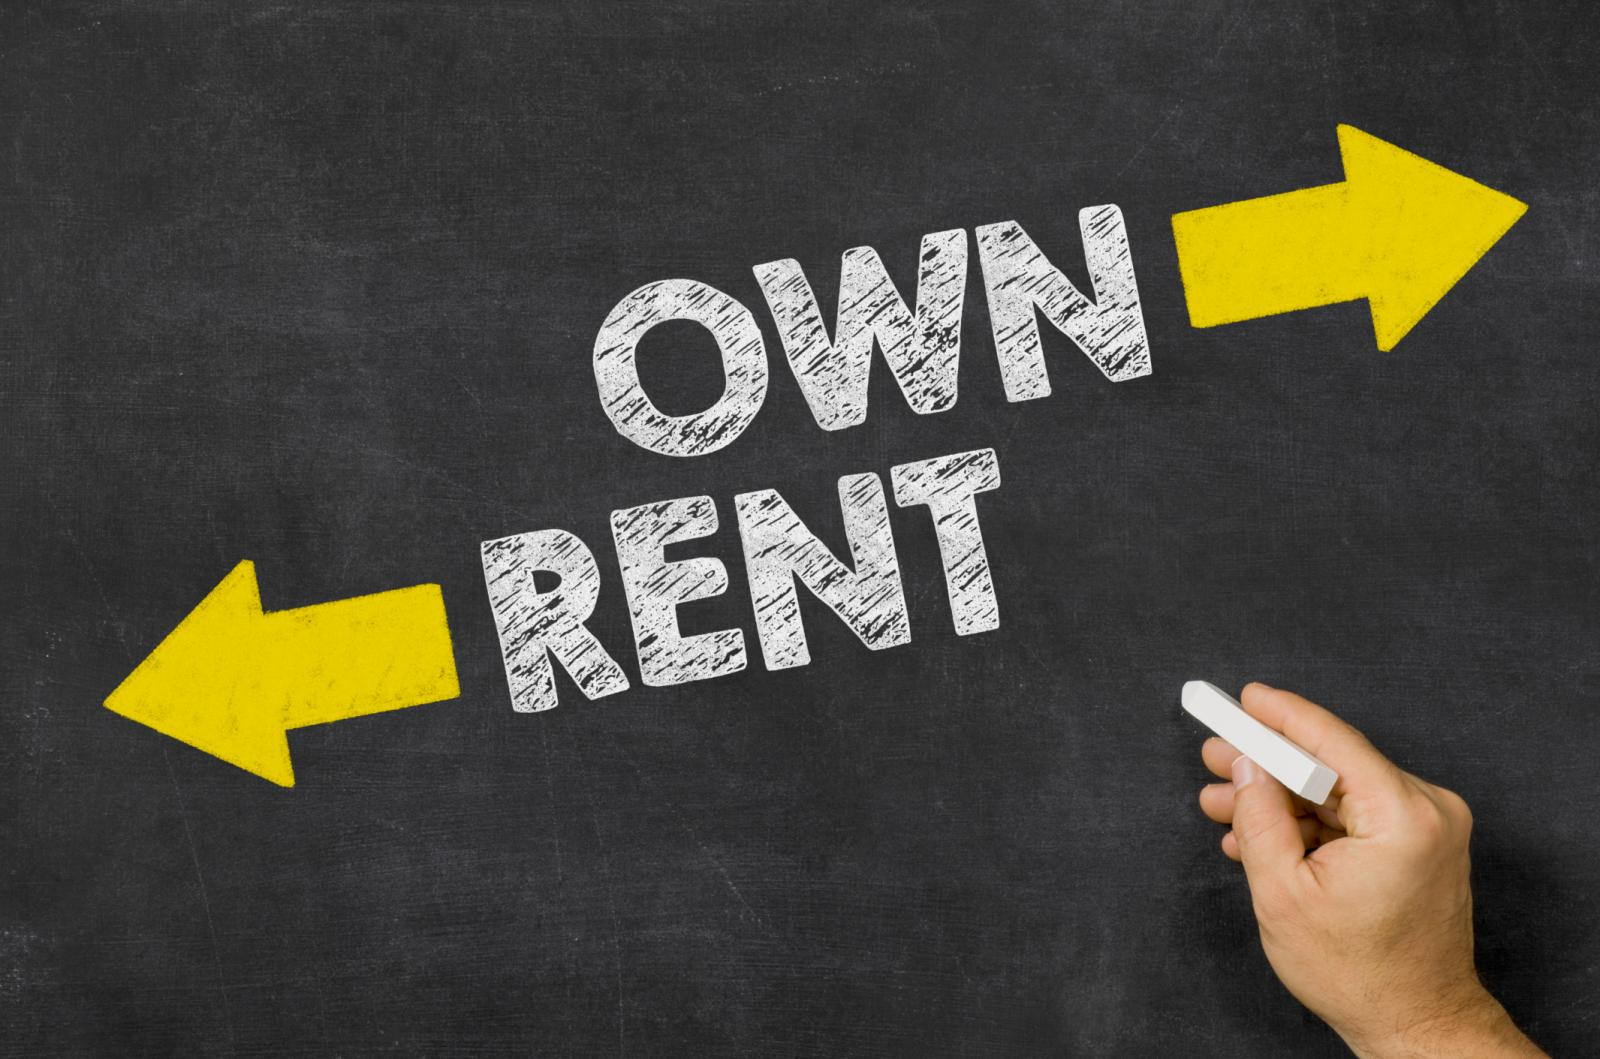 reiwa standard application and offer of option to lease